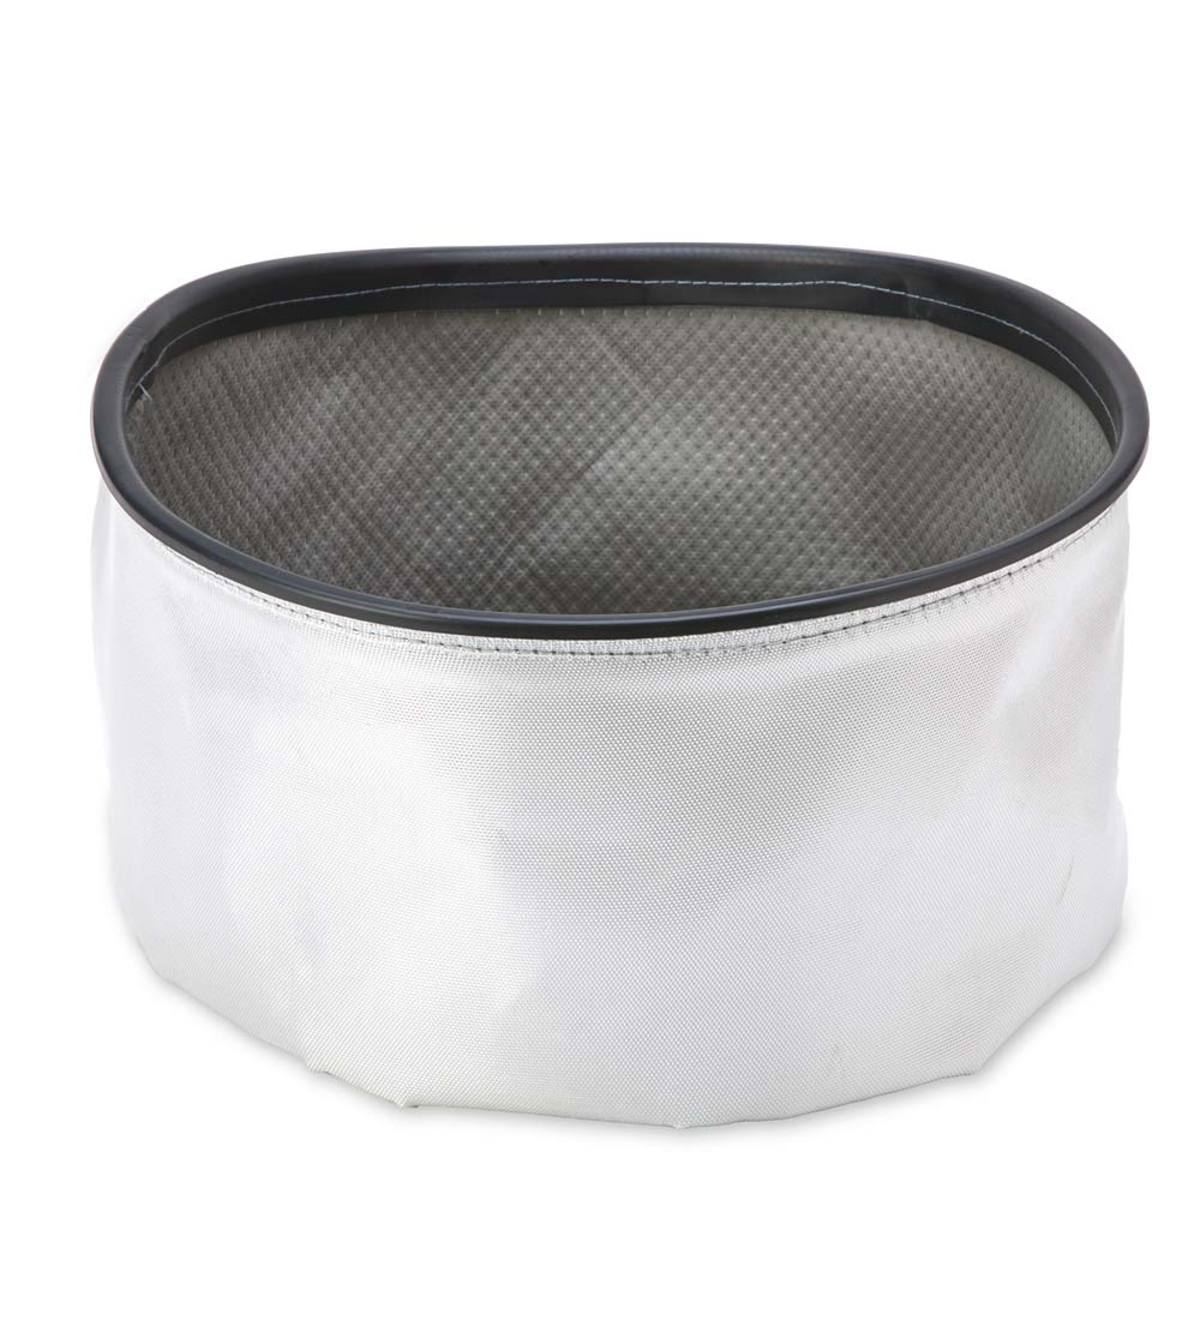 Warm Ash Vacuum Replacement Filter